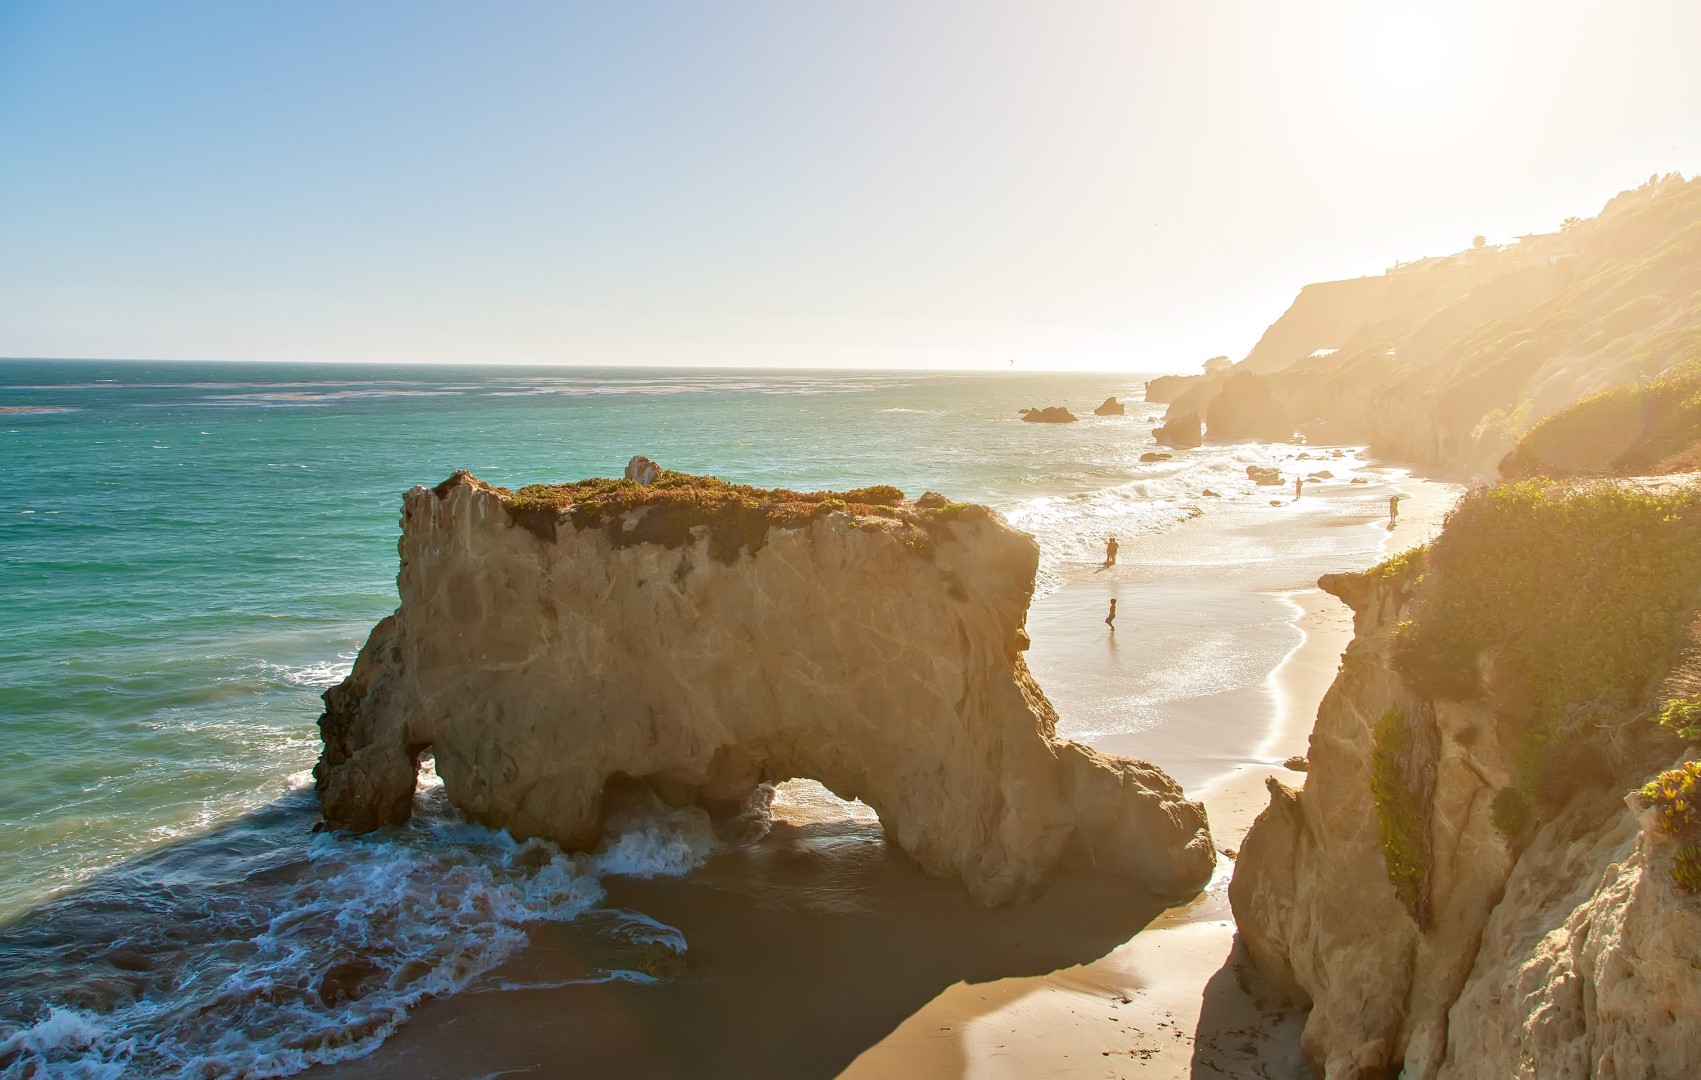 El matador state beach malibu ca california beaches for Beautiful beaches in la